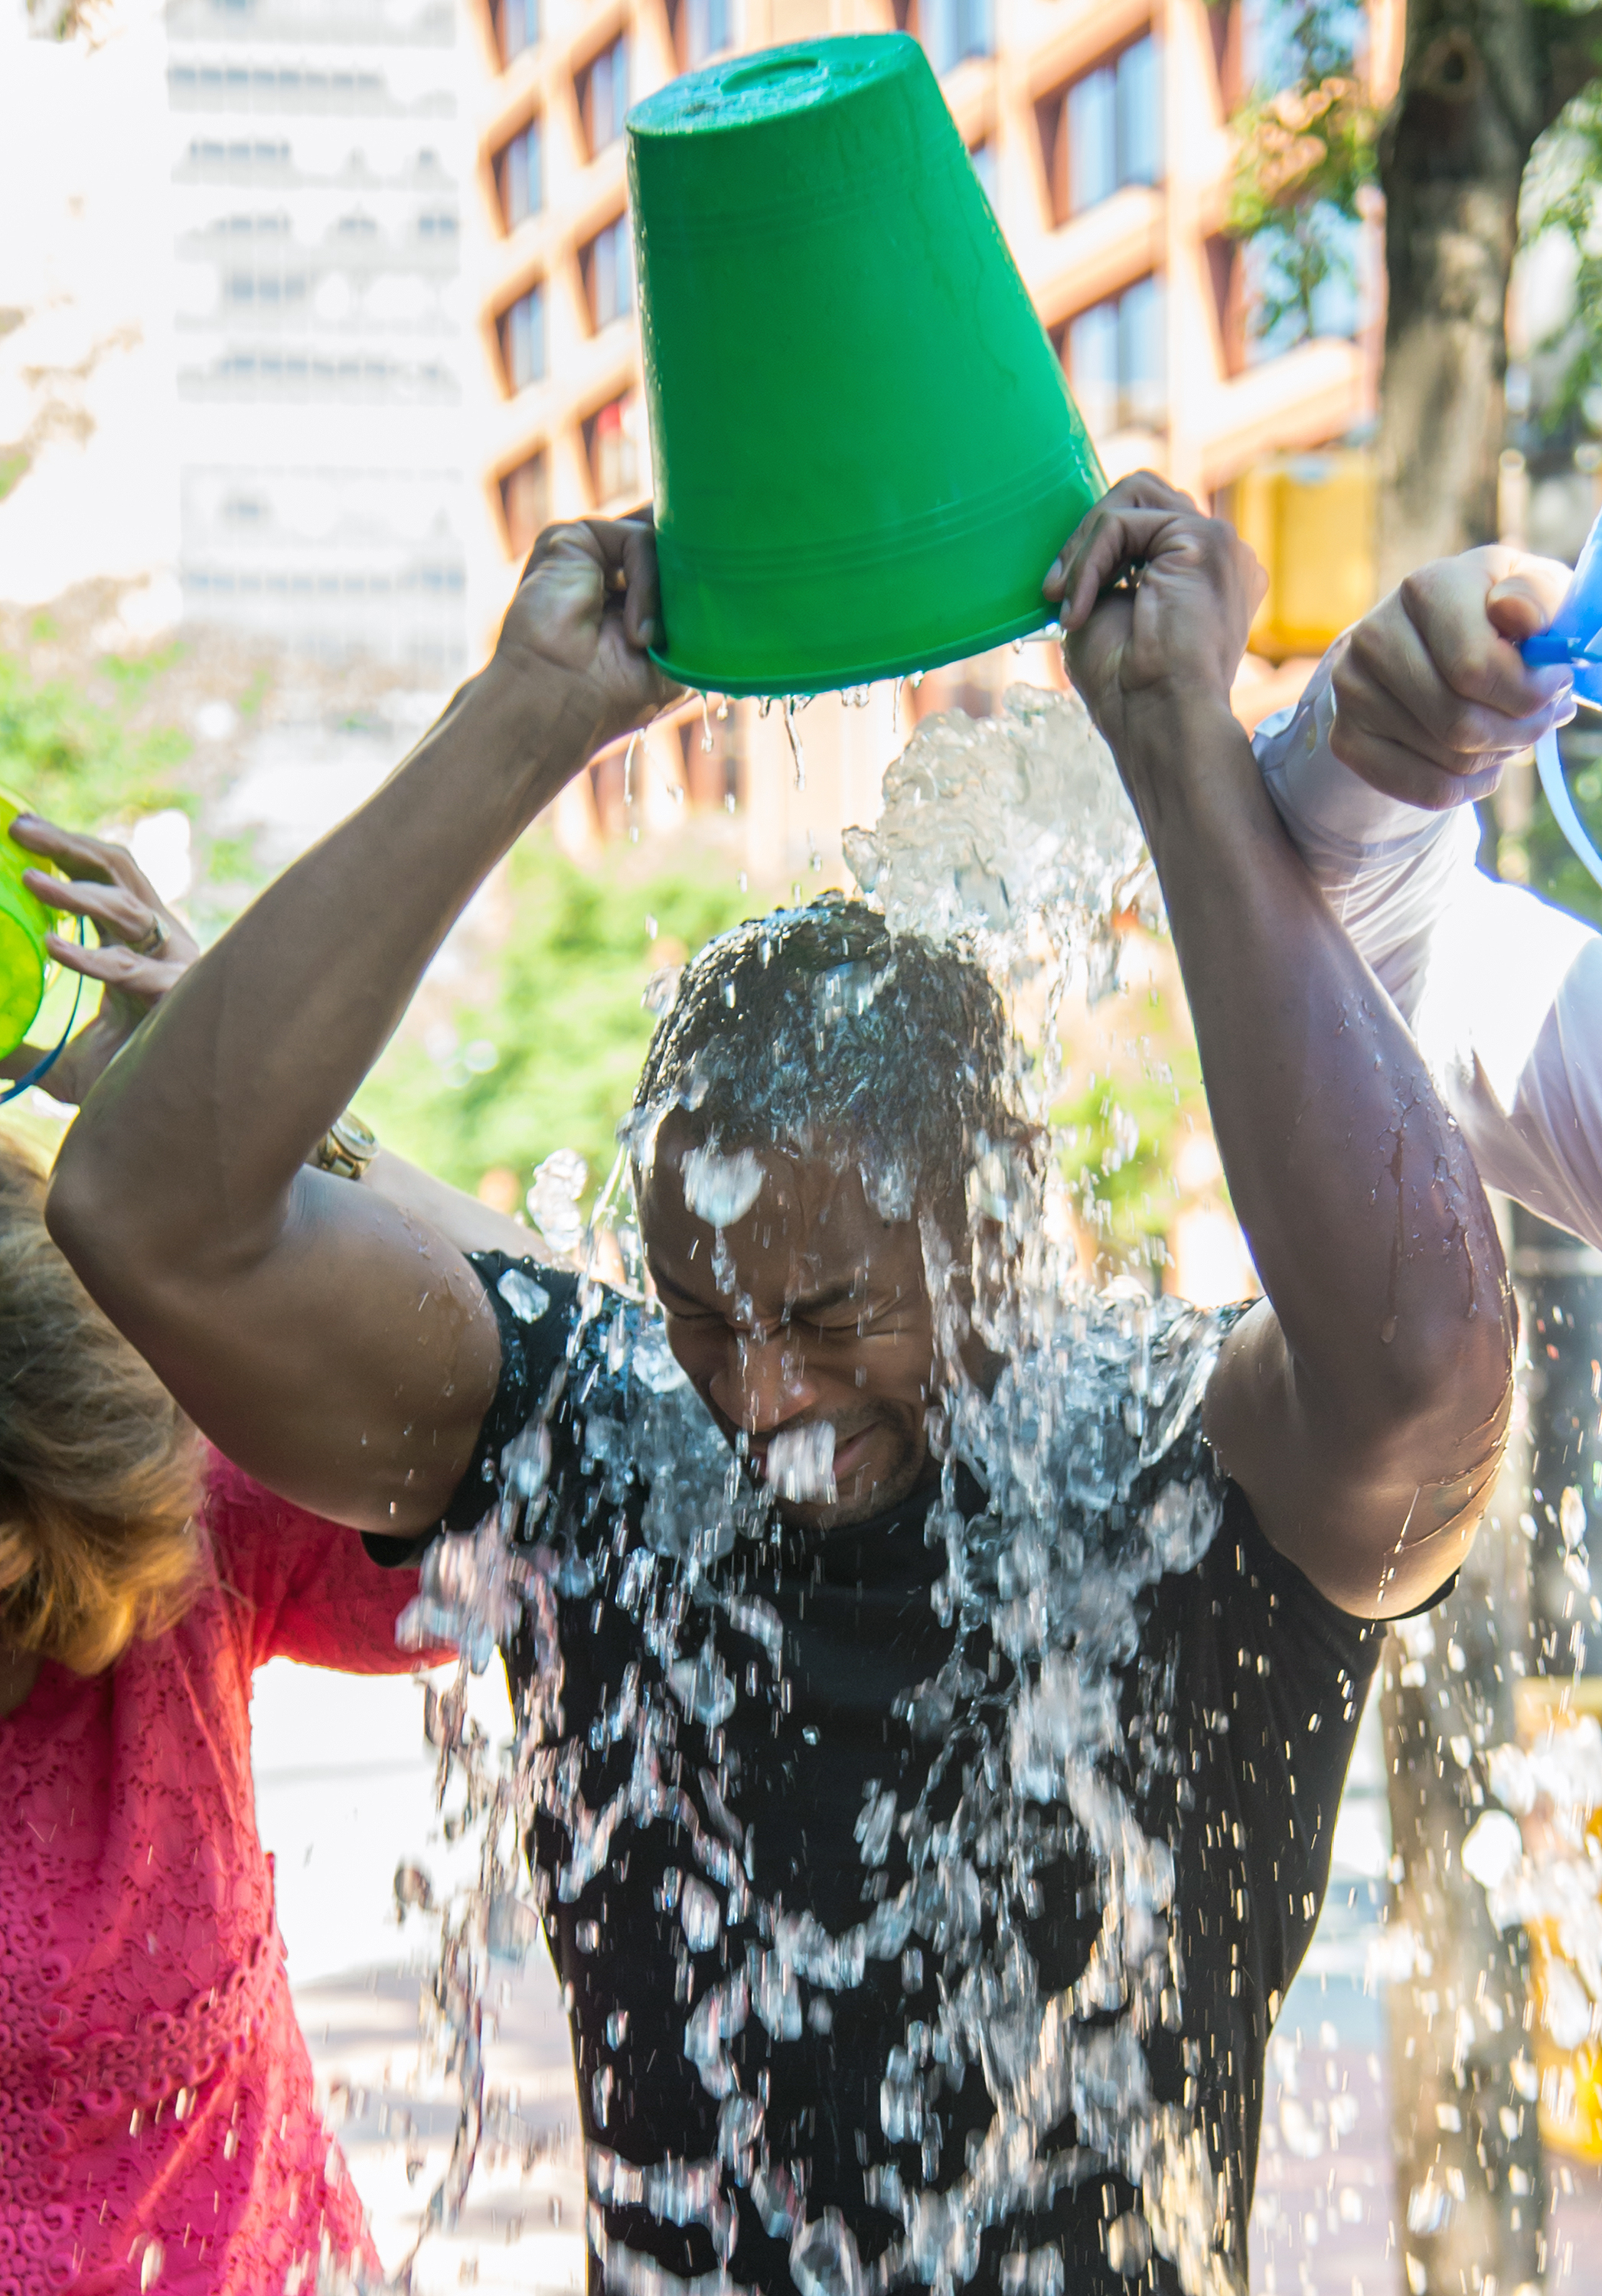 R&B singer, songwriter and producer Tank  takes The Ice Bucket Challenge and challenges his friends